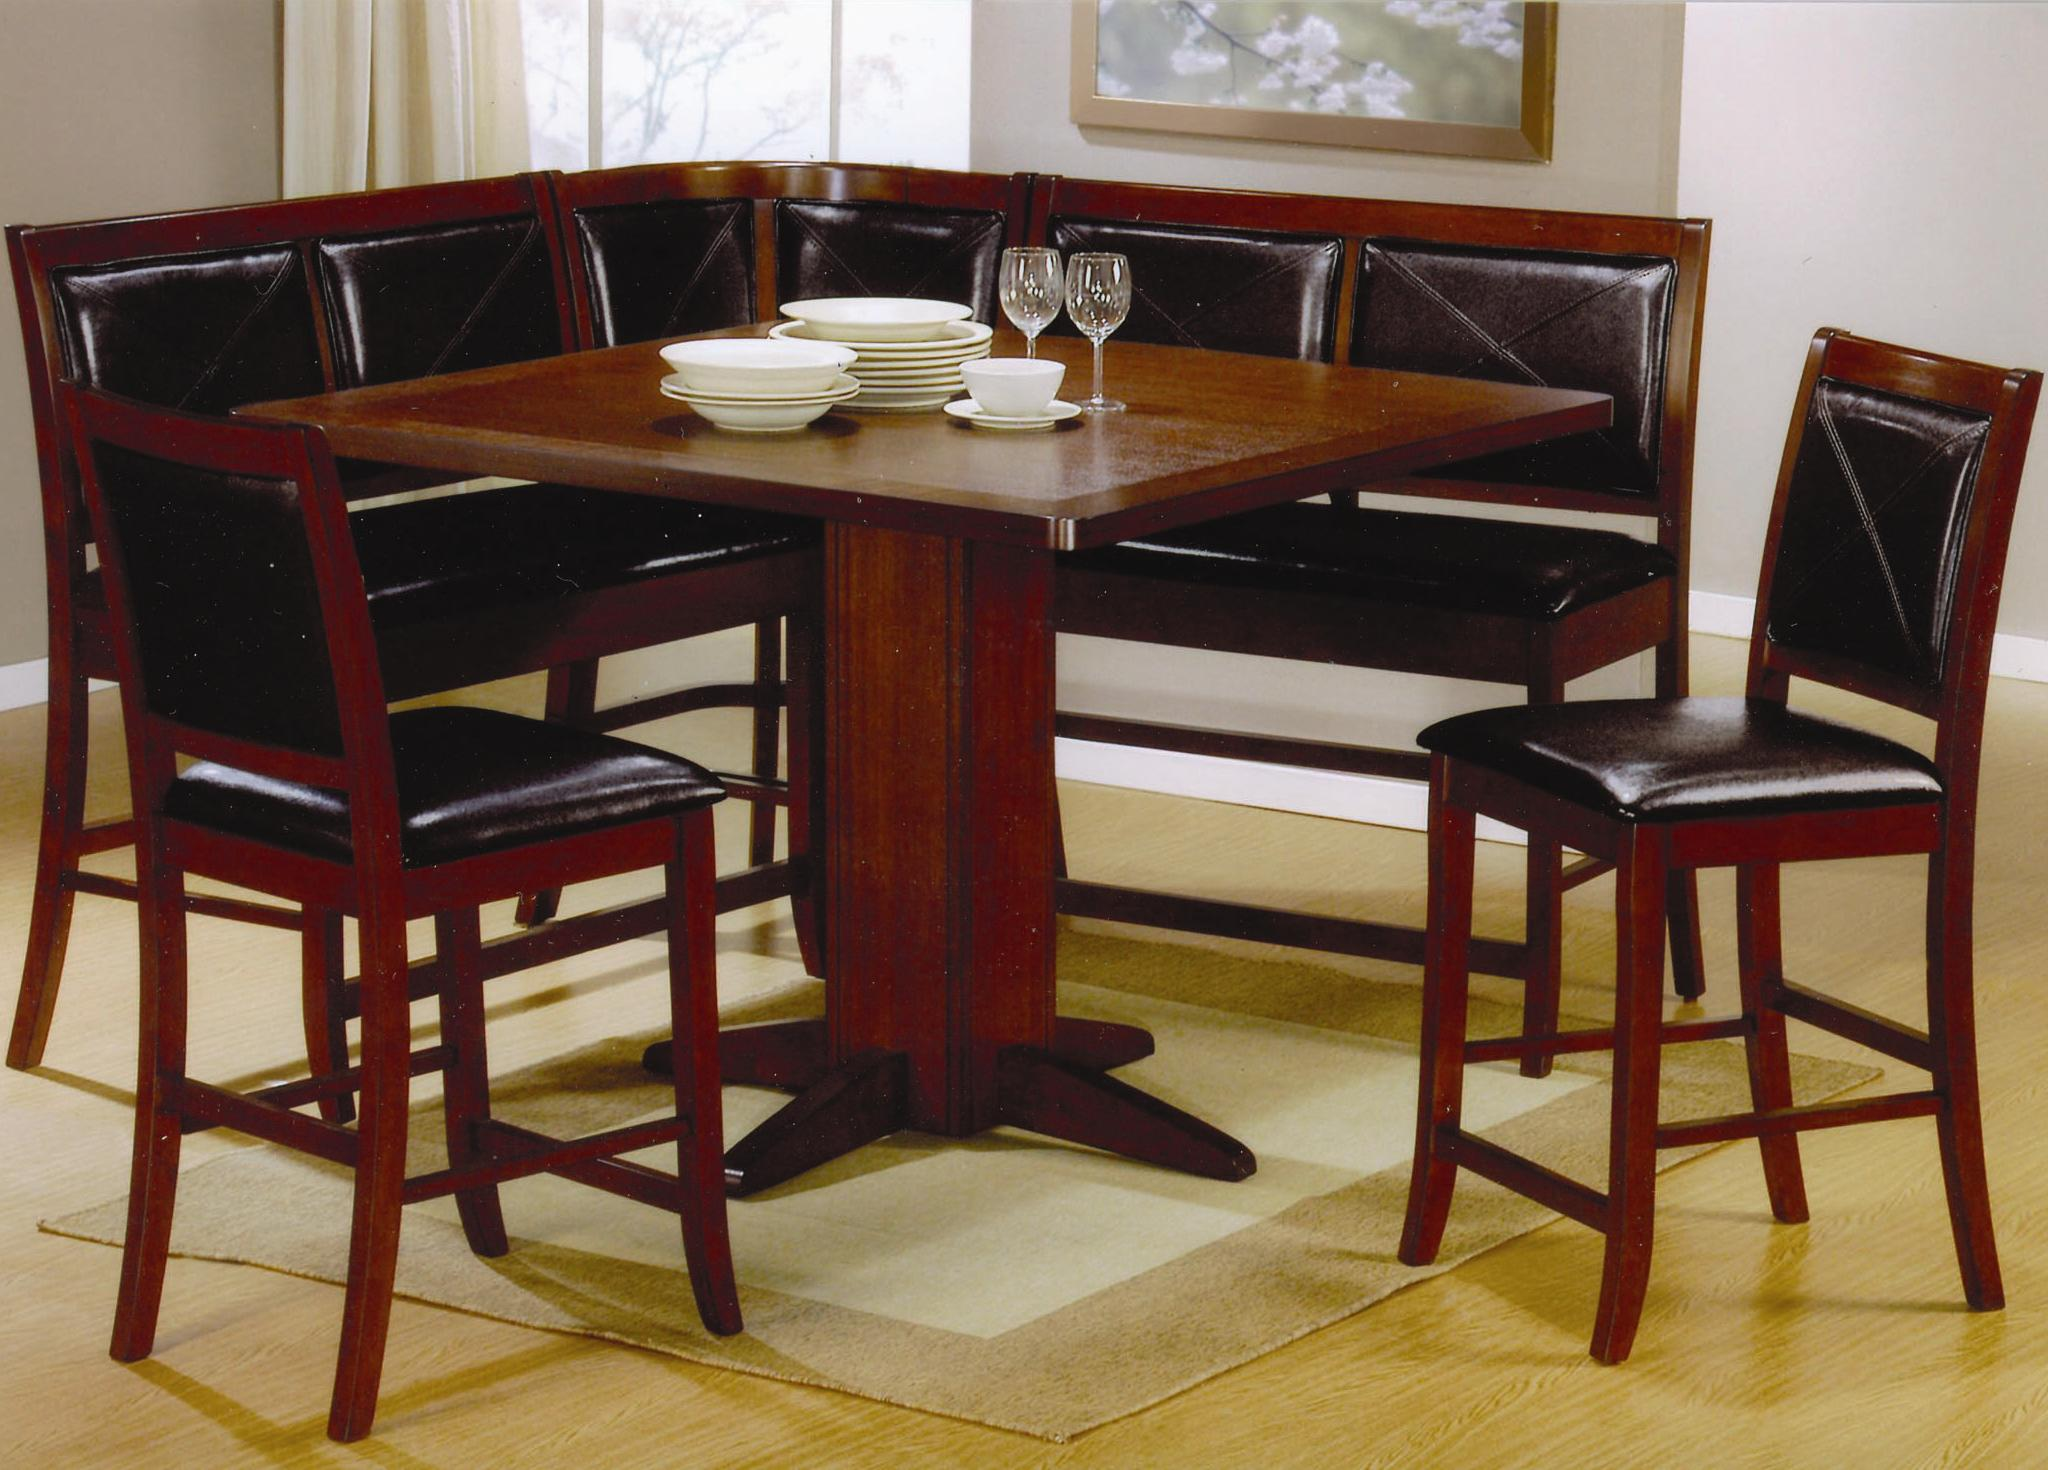 Coaster Lancaster 6 Piece Counter Height Dining Set - Item Number 101791+2x2+ & Coaster Lancaster 6 Piece Counter Height Dining Set | Value City ...